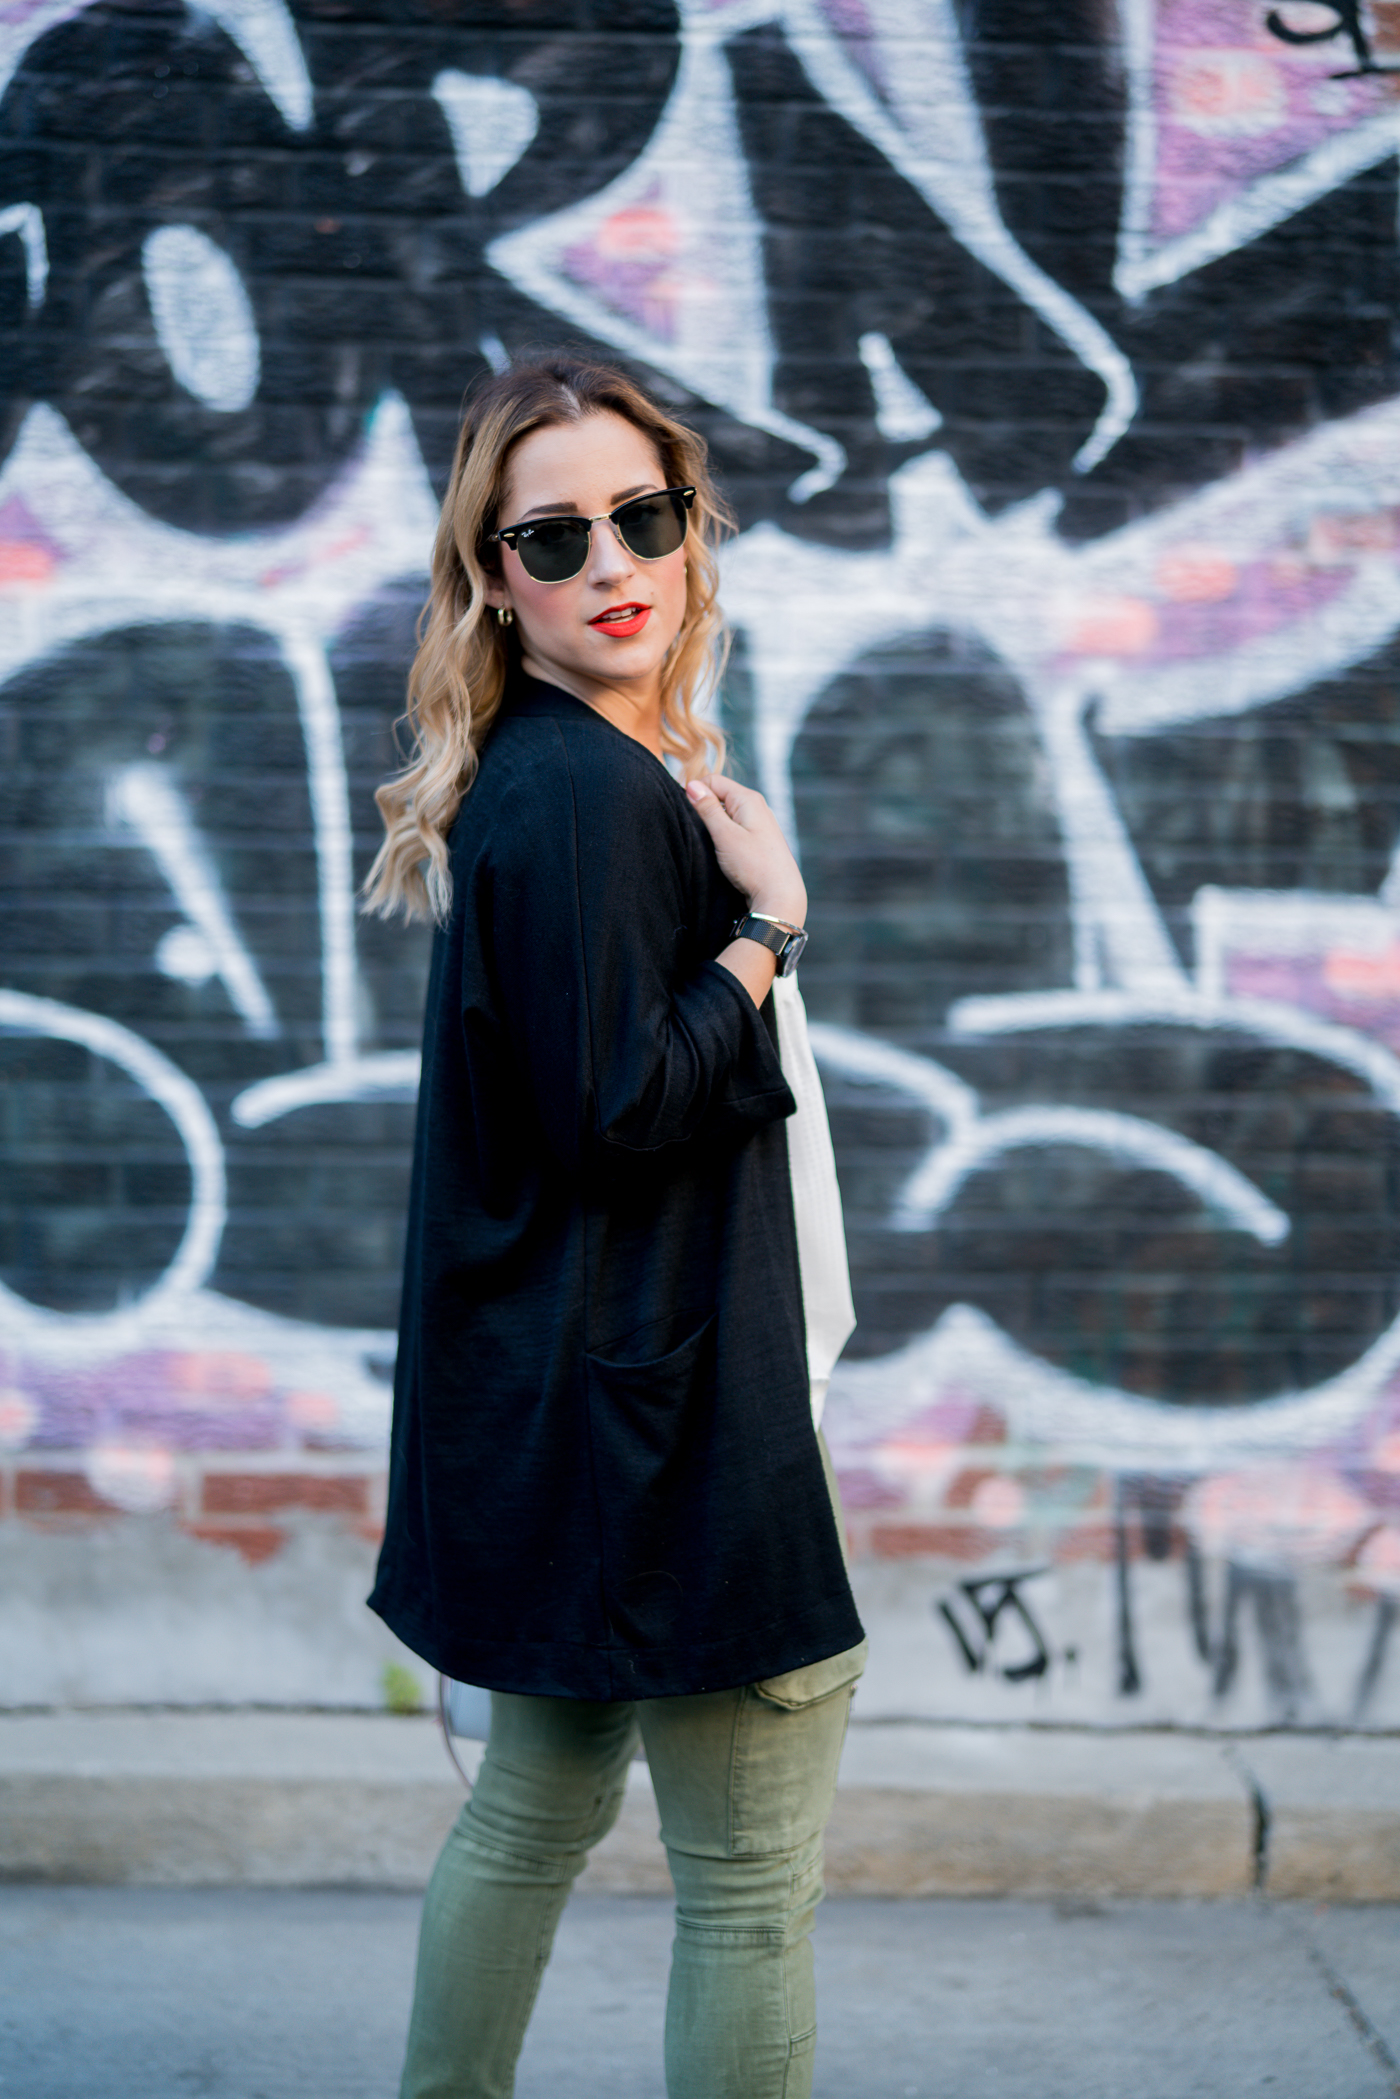 Spring outfit idea, as seen on Toronto fashion blogger, Jackie Goldhar of Something About That blog